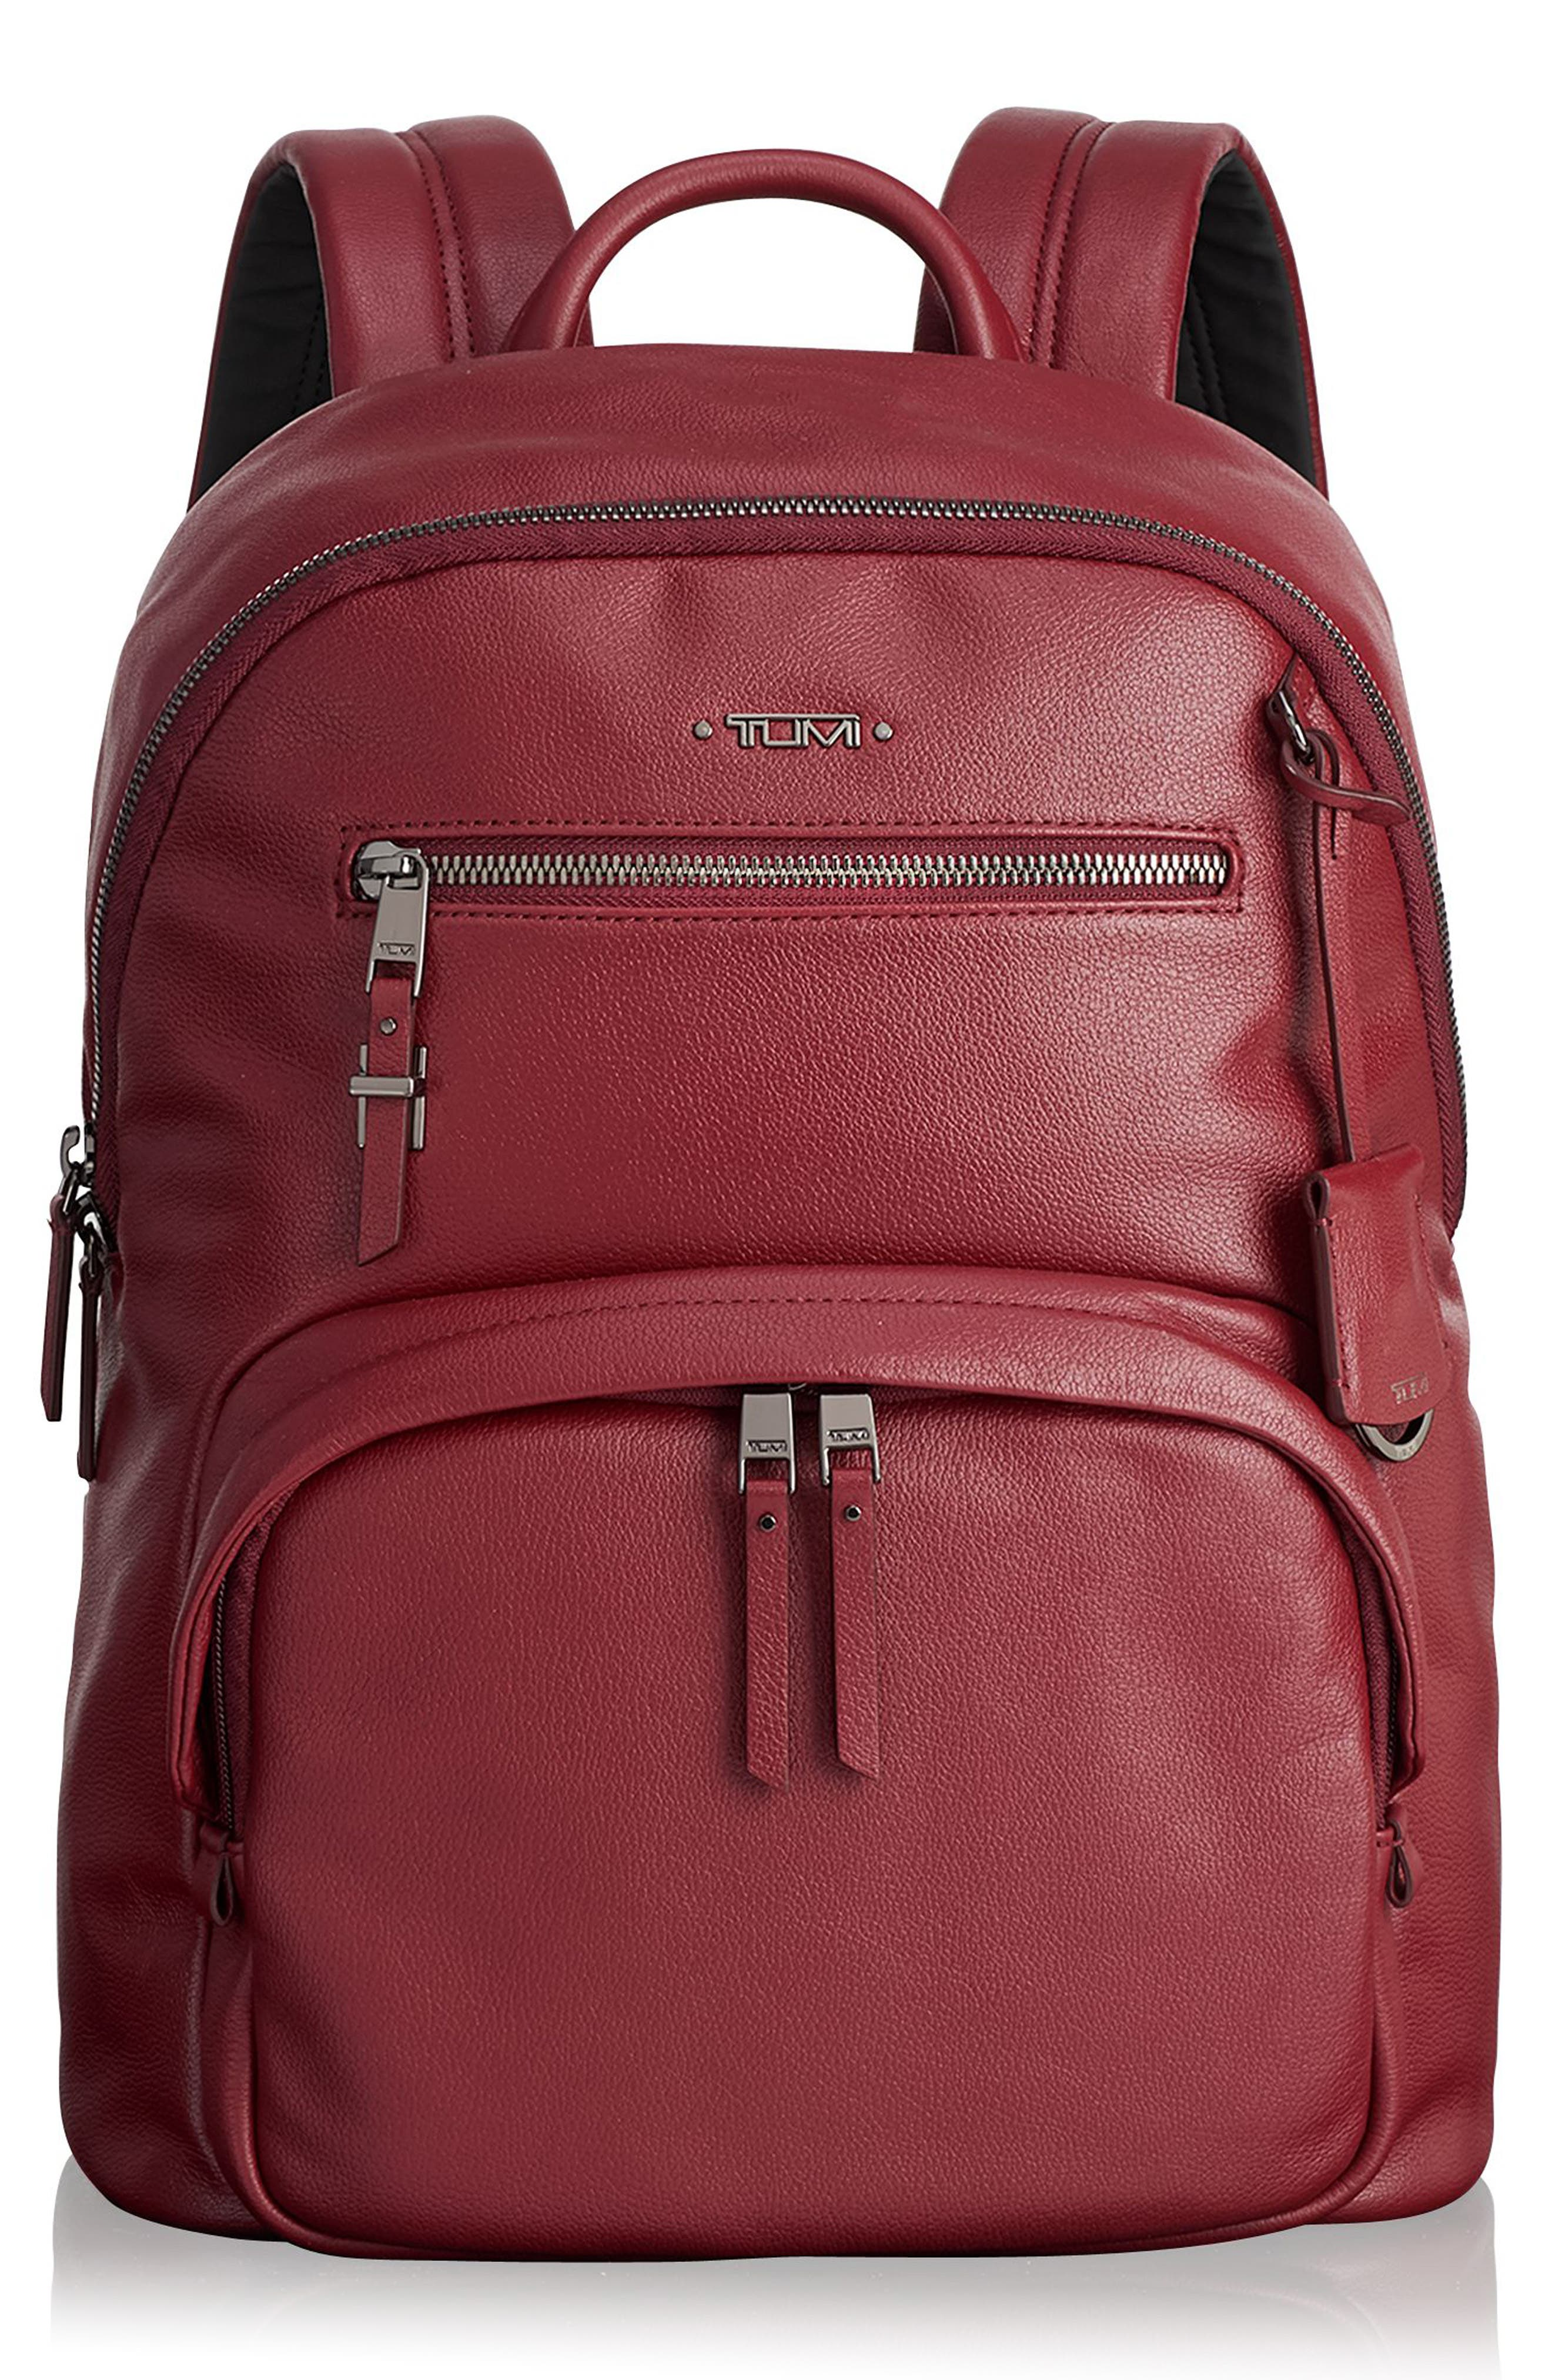 Voyager Hagen Leather Backpack,                             Main thumbnail 1, color,                             647